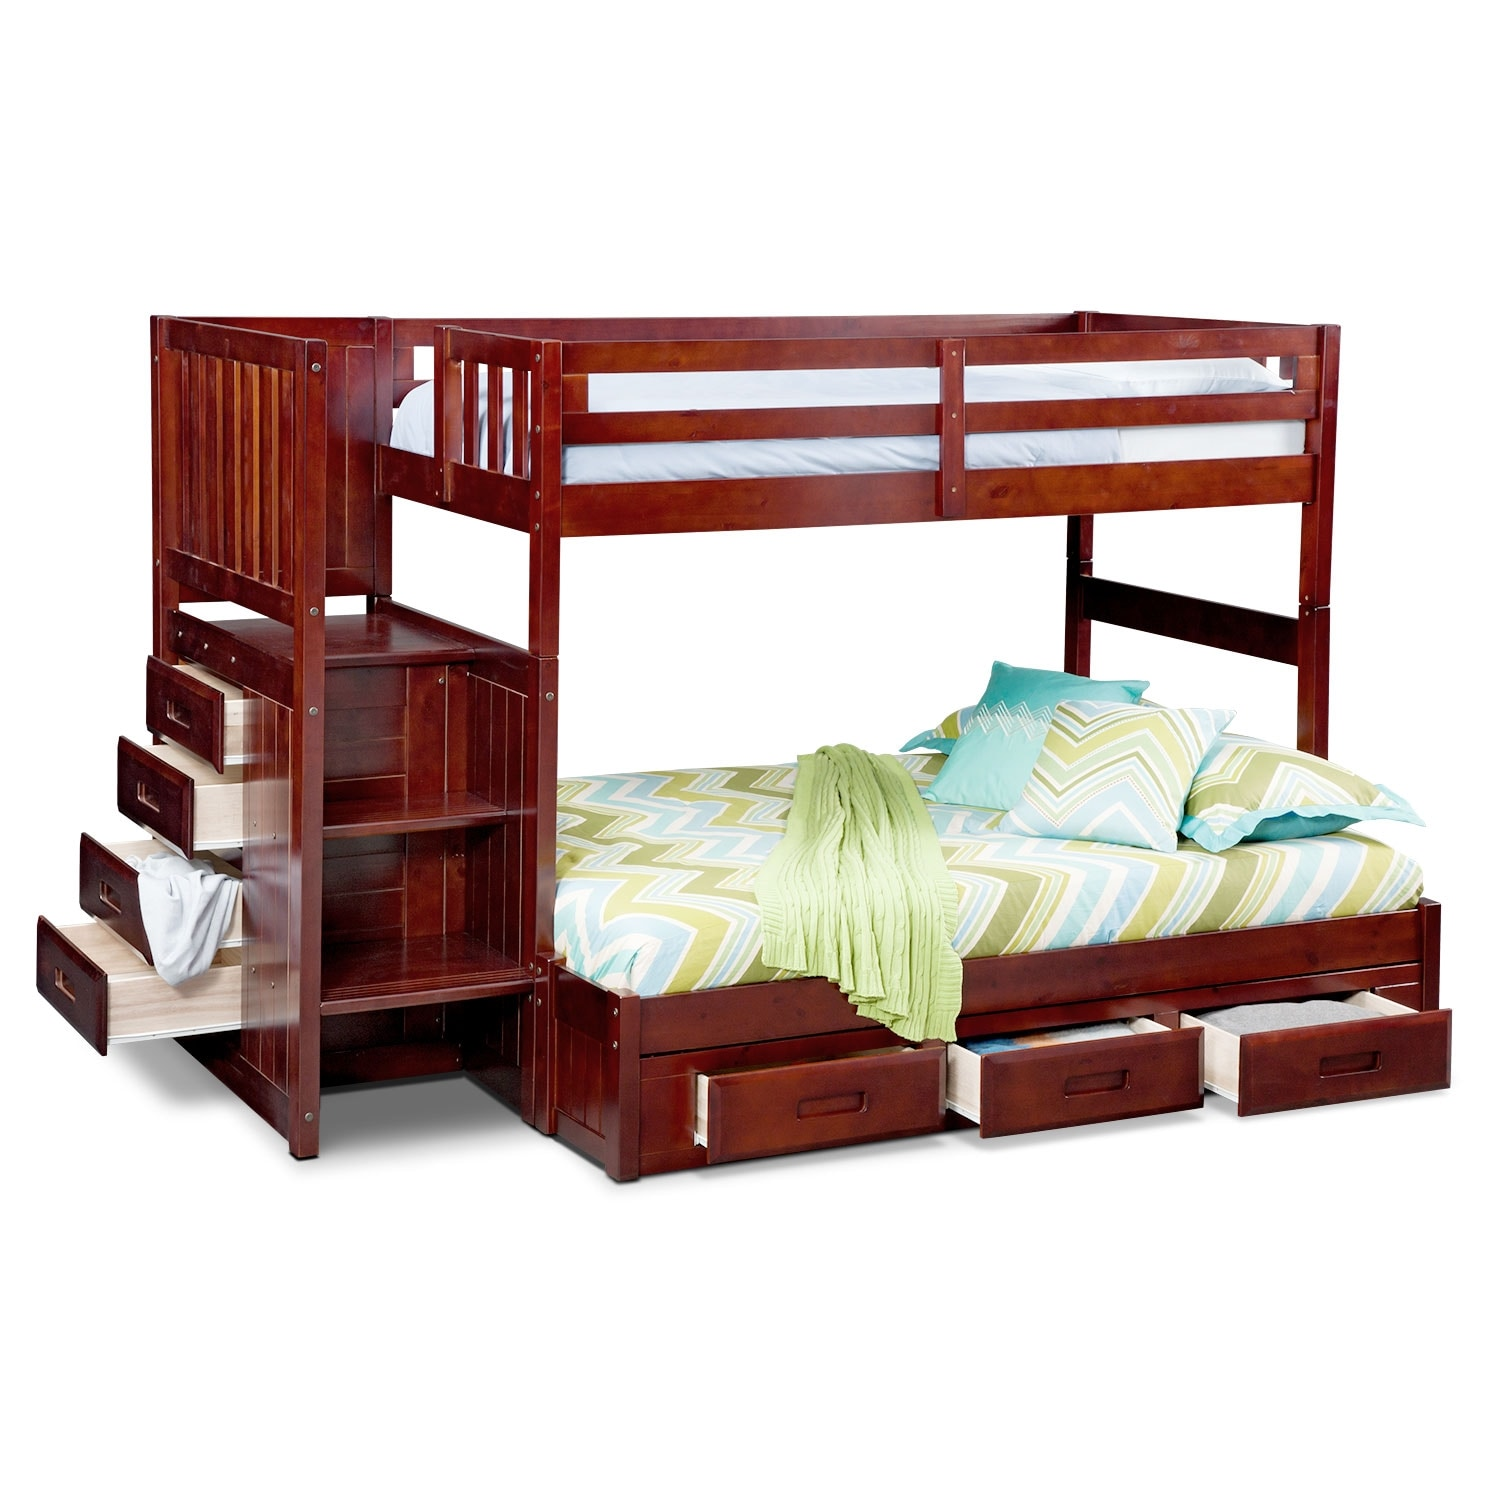 Ranger twin over full bunk bed with storage stairs underbed drawers merlot american - Bunk bed with drawer steps ...